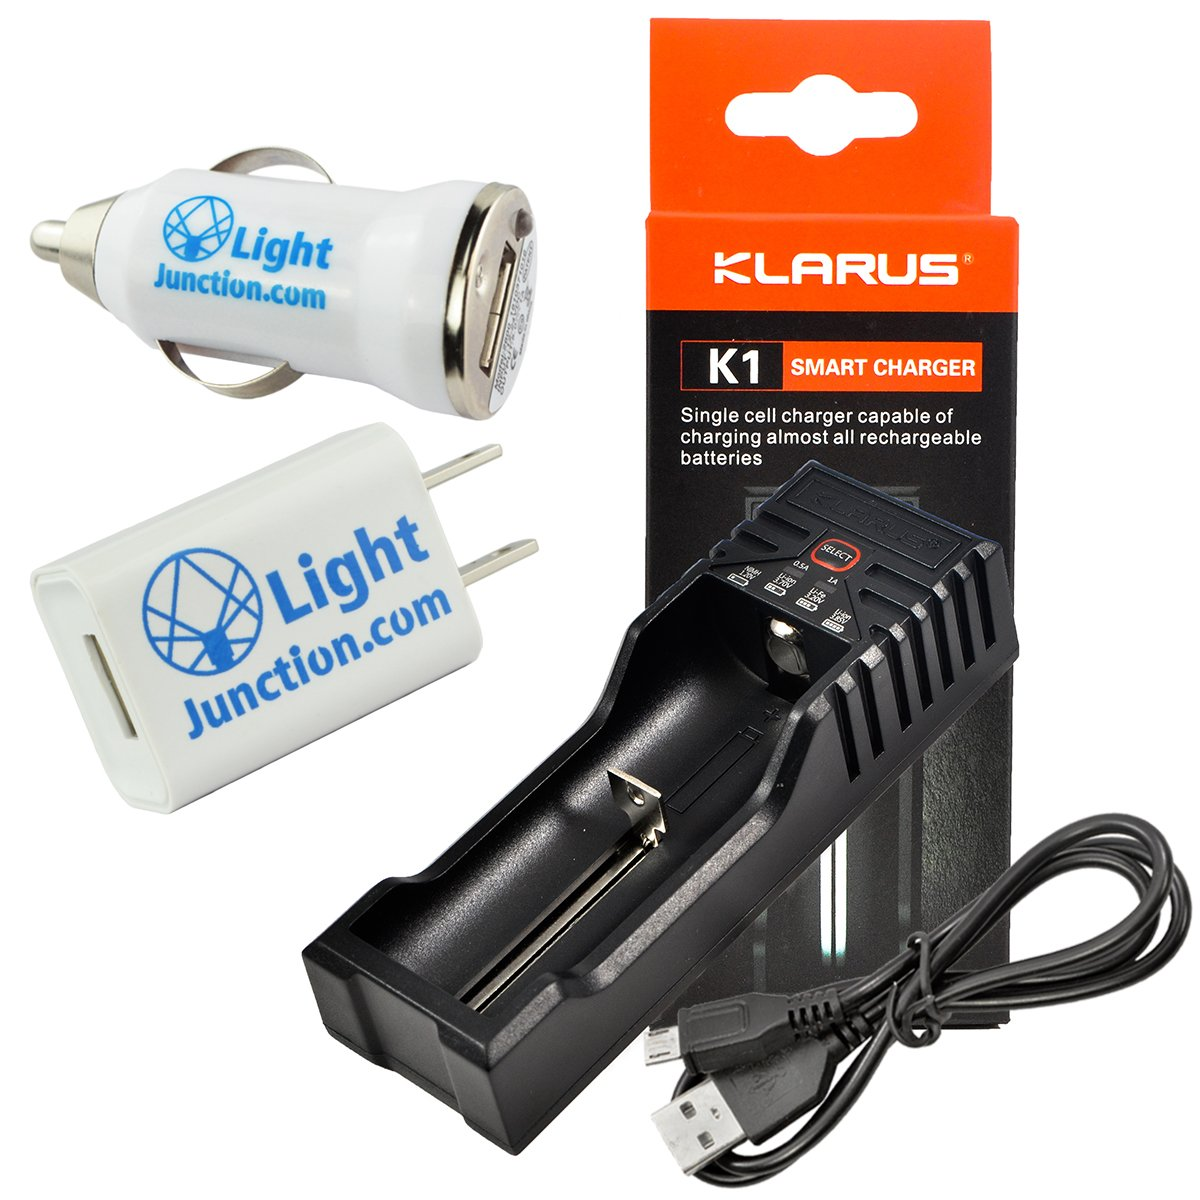 Klarus 18gt 36 3600mah 18650 Li Ion Battery 36v Nicad Charger By Fet Irf9530 K1 Single Cell Smart For 16340 22650 Ni